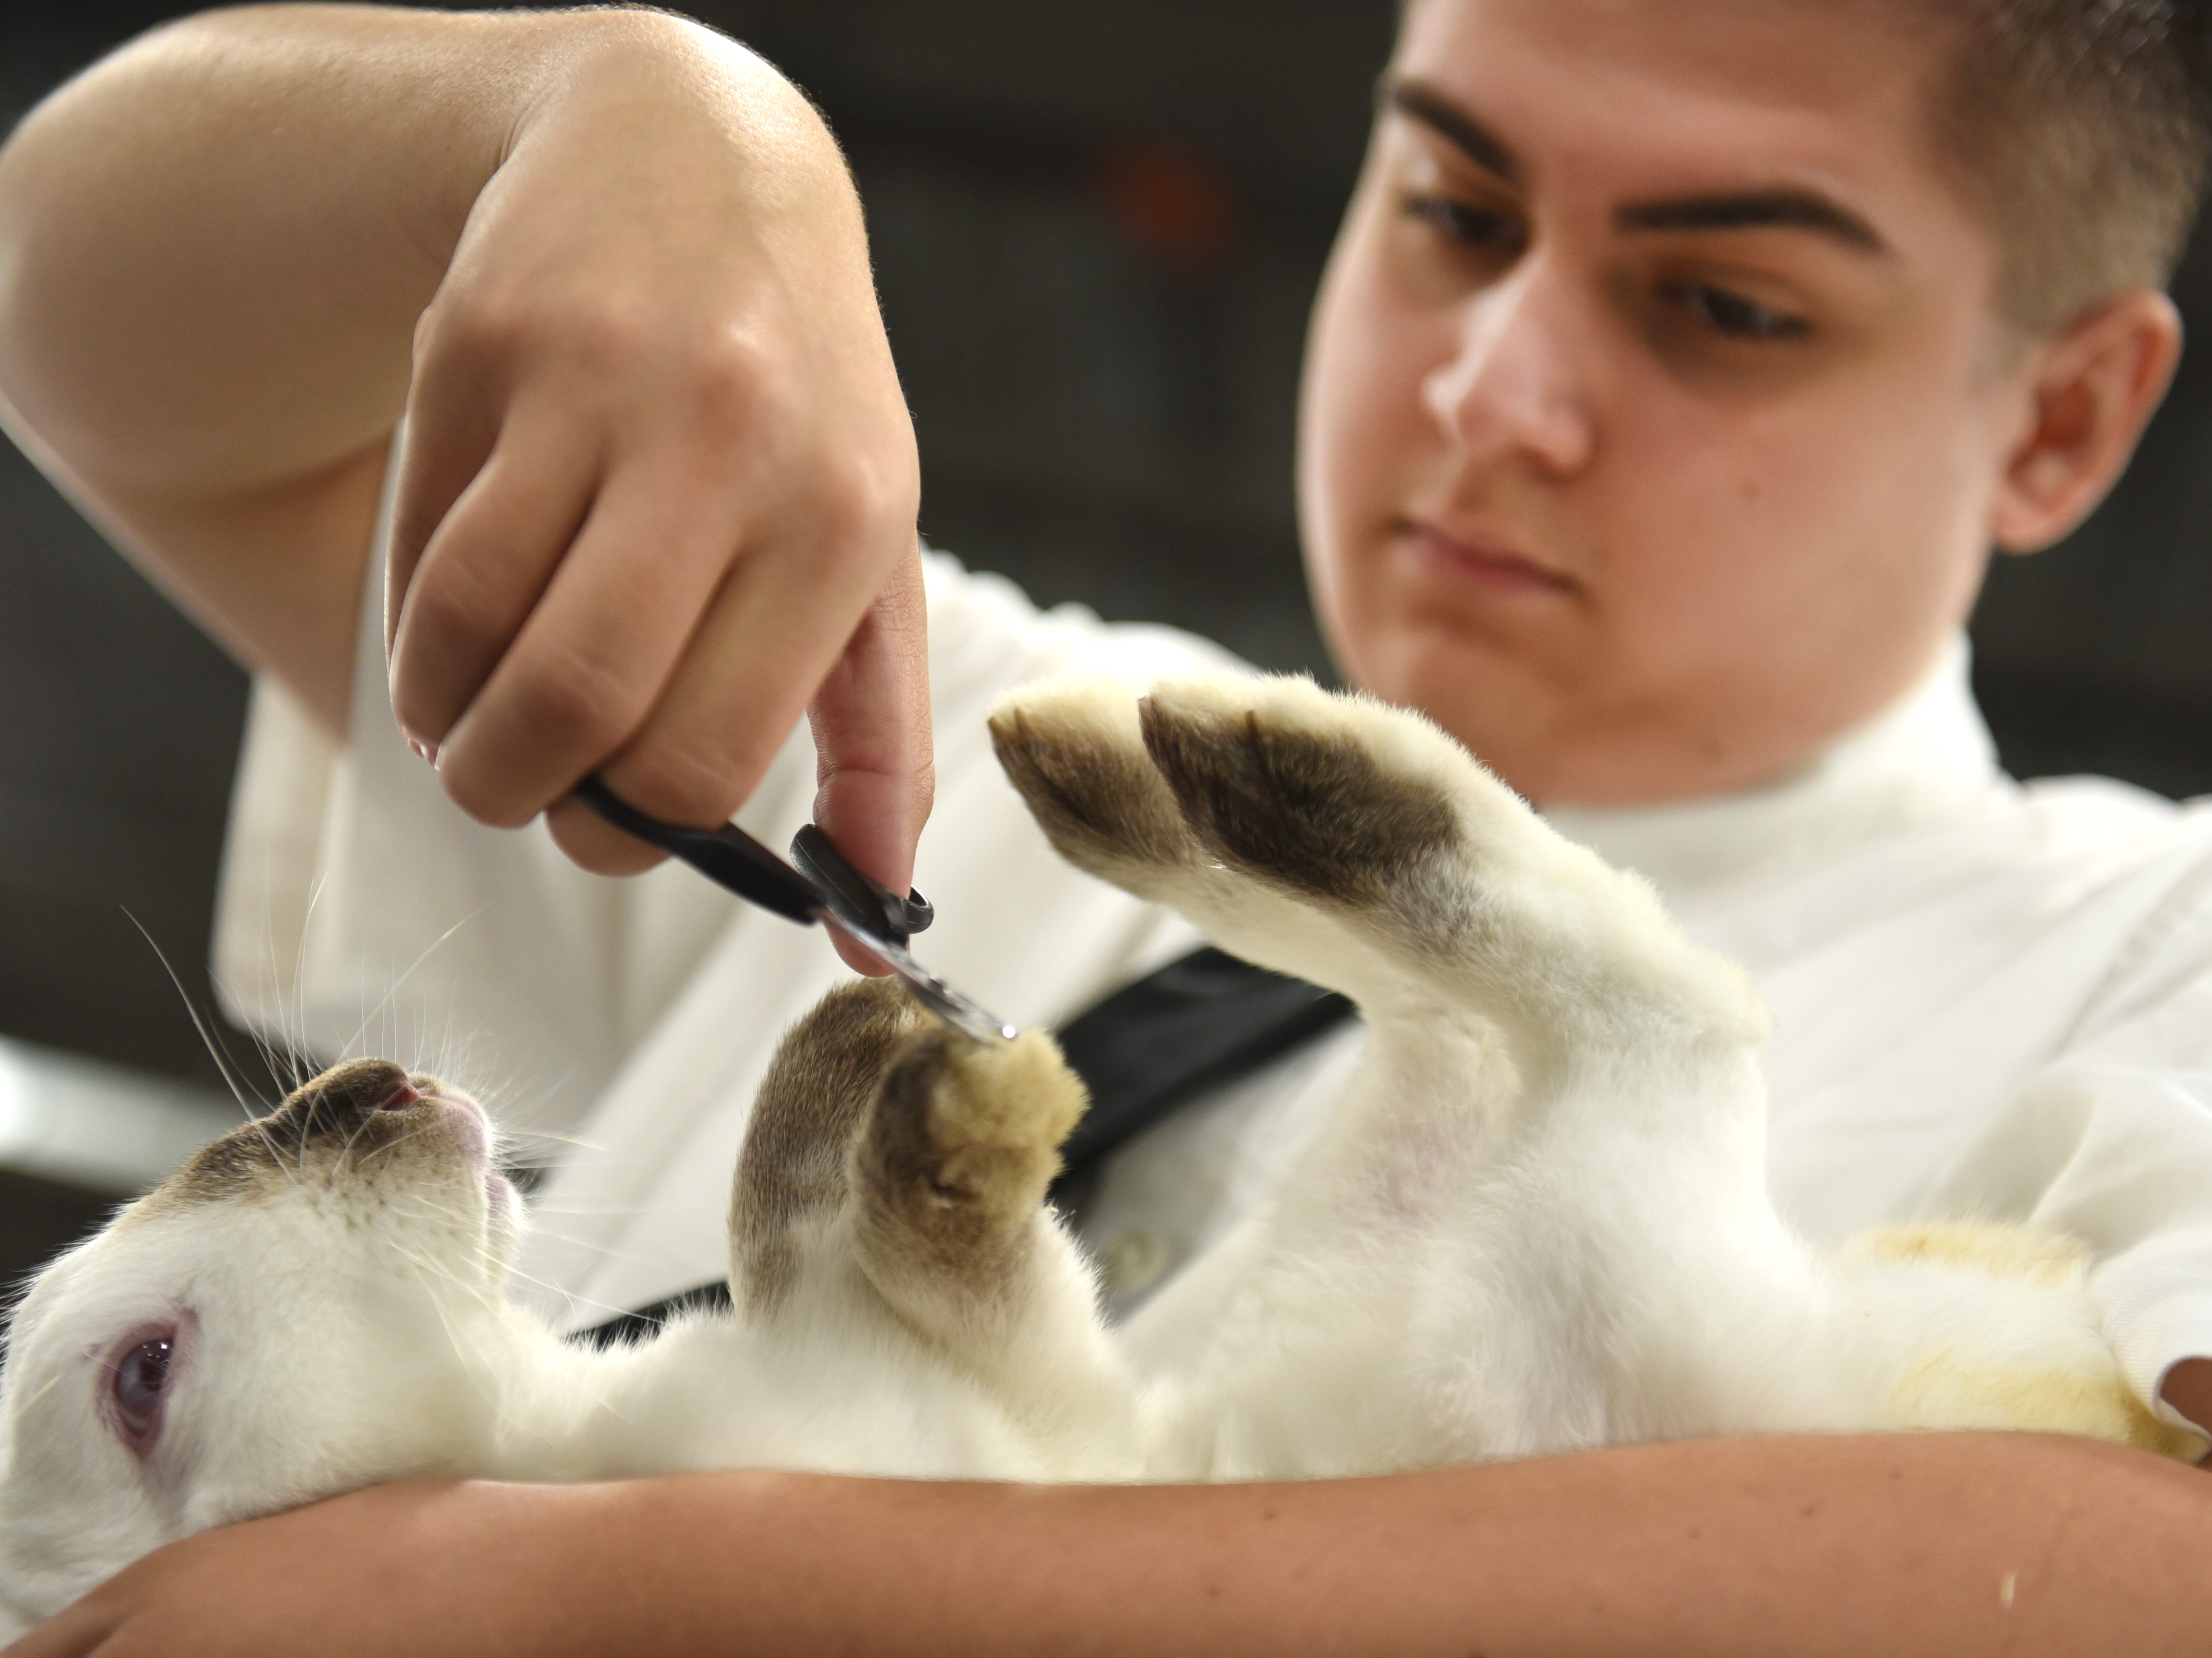 Dale Miss of Fowlerville trims the nails of his prized rabbit named Trump during the first day of the Michigan State Fair at the Suburban Collection Showplace in Novi on August 30, 2018.